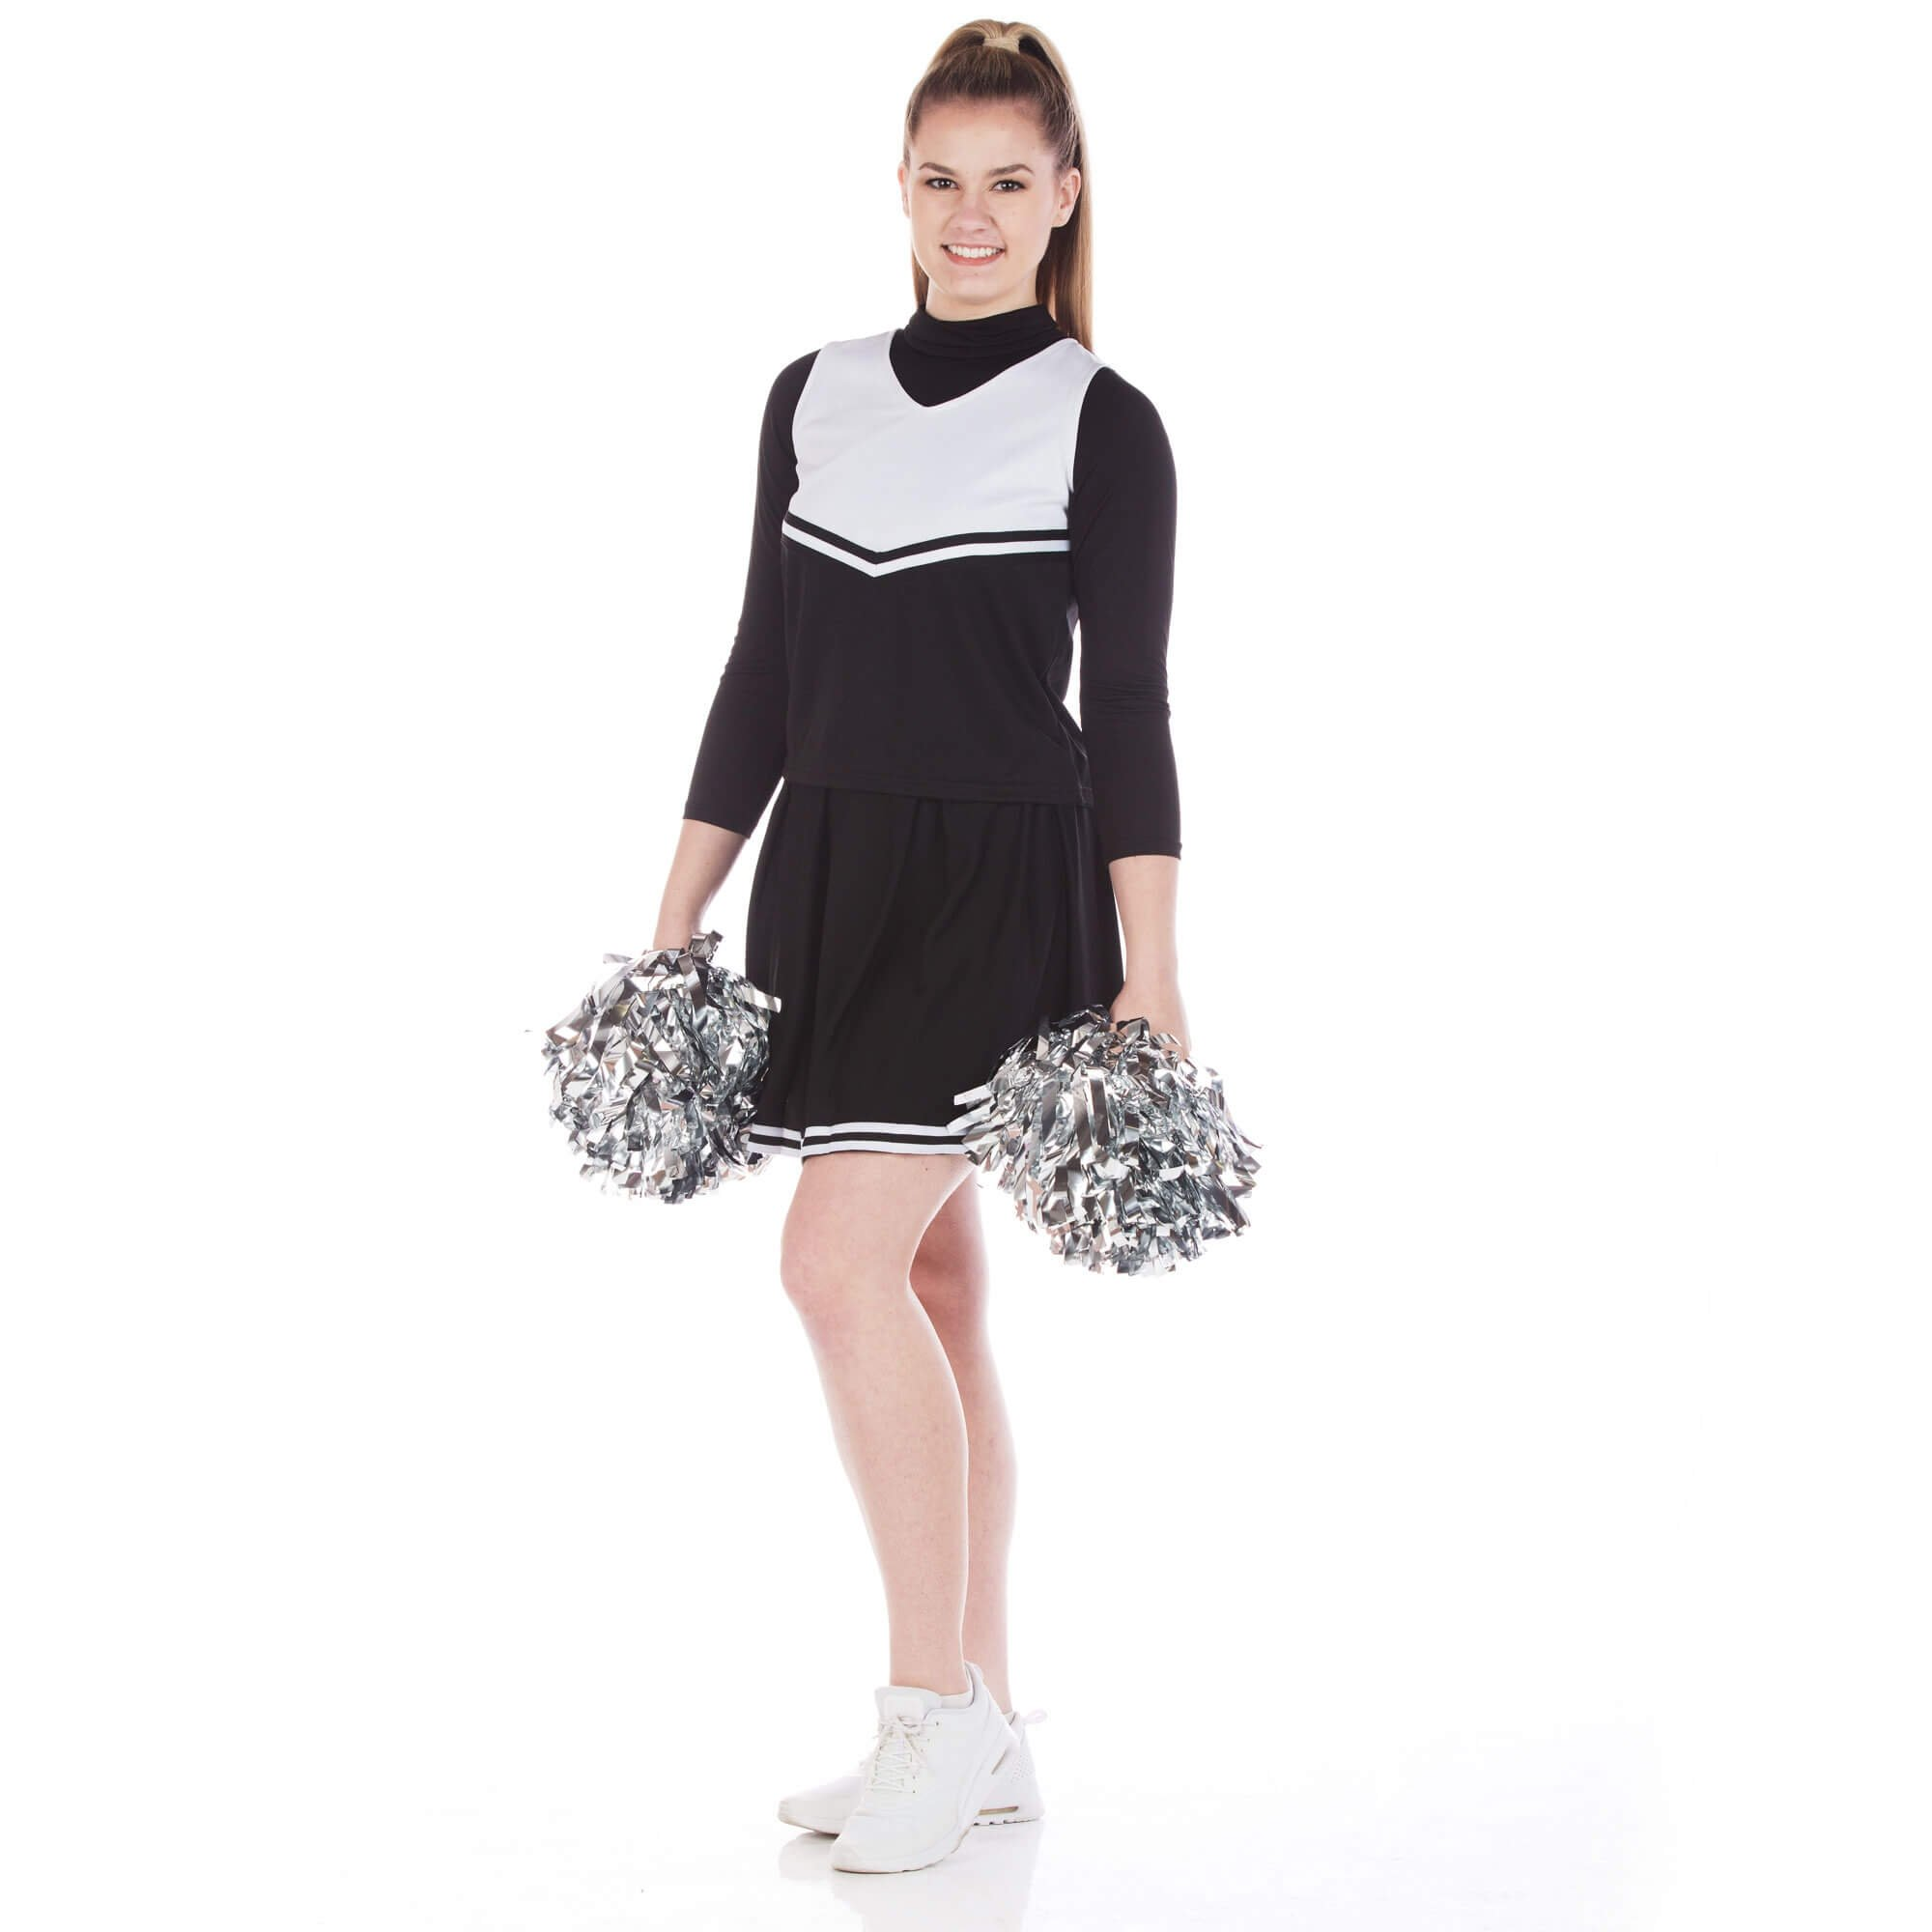 Danzcue Adult V-Neck Knit Pleat Skirt Cheerleaders Uniform Set